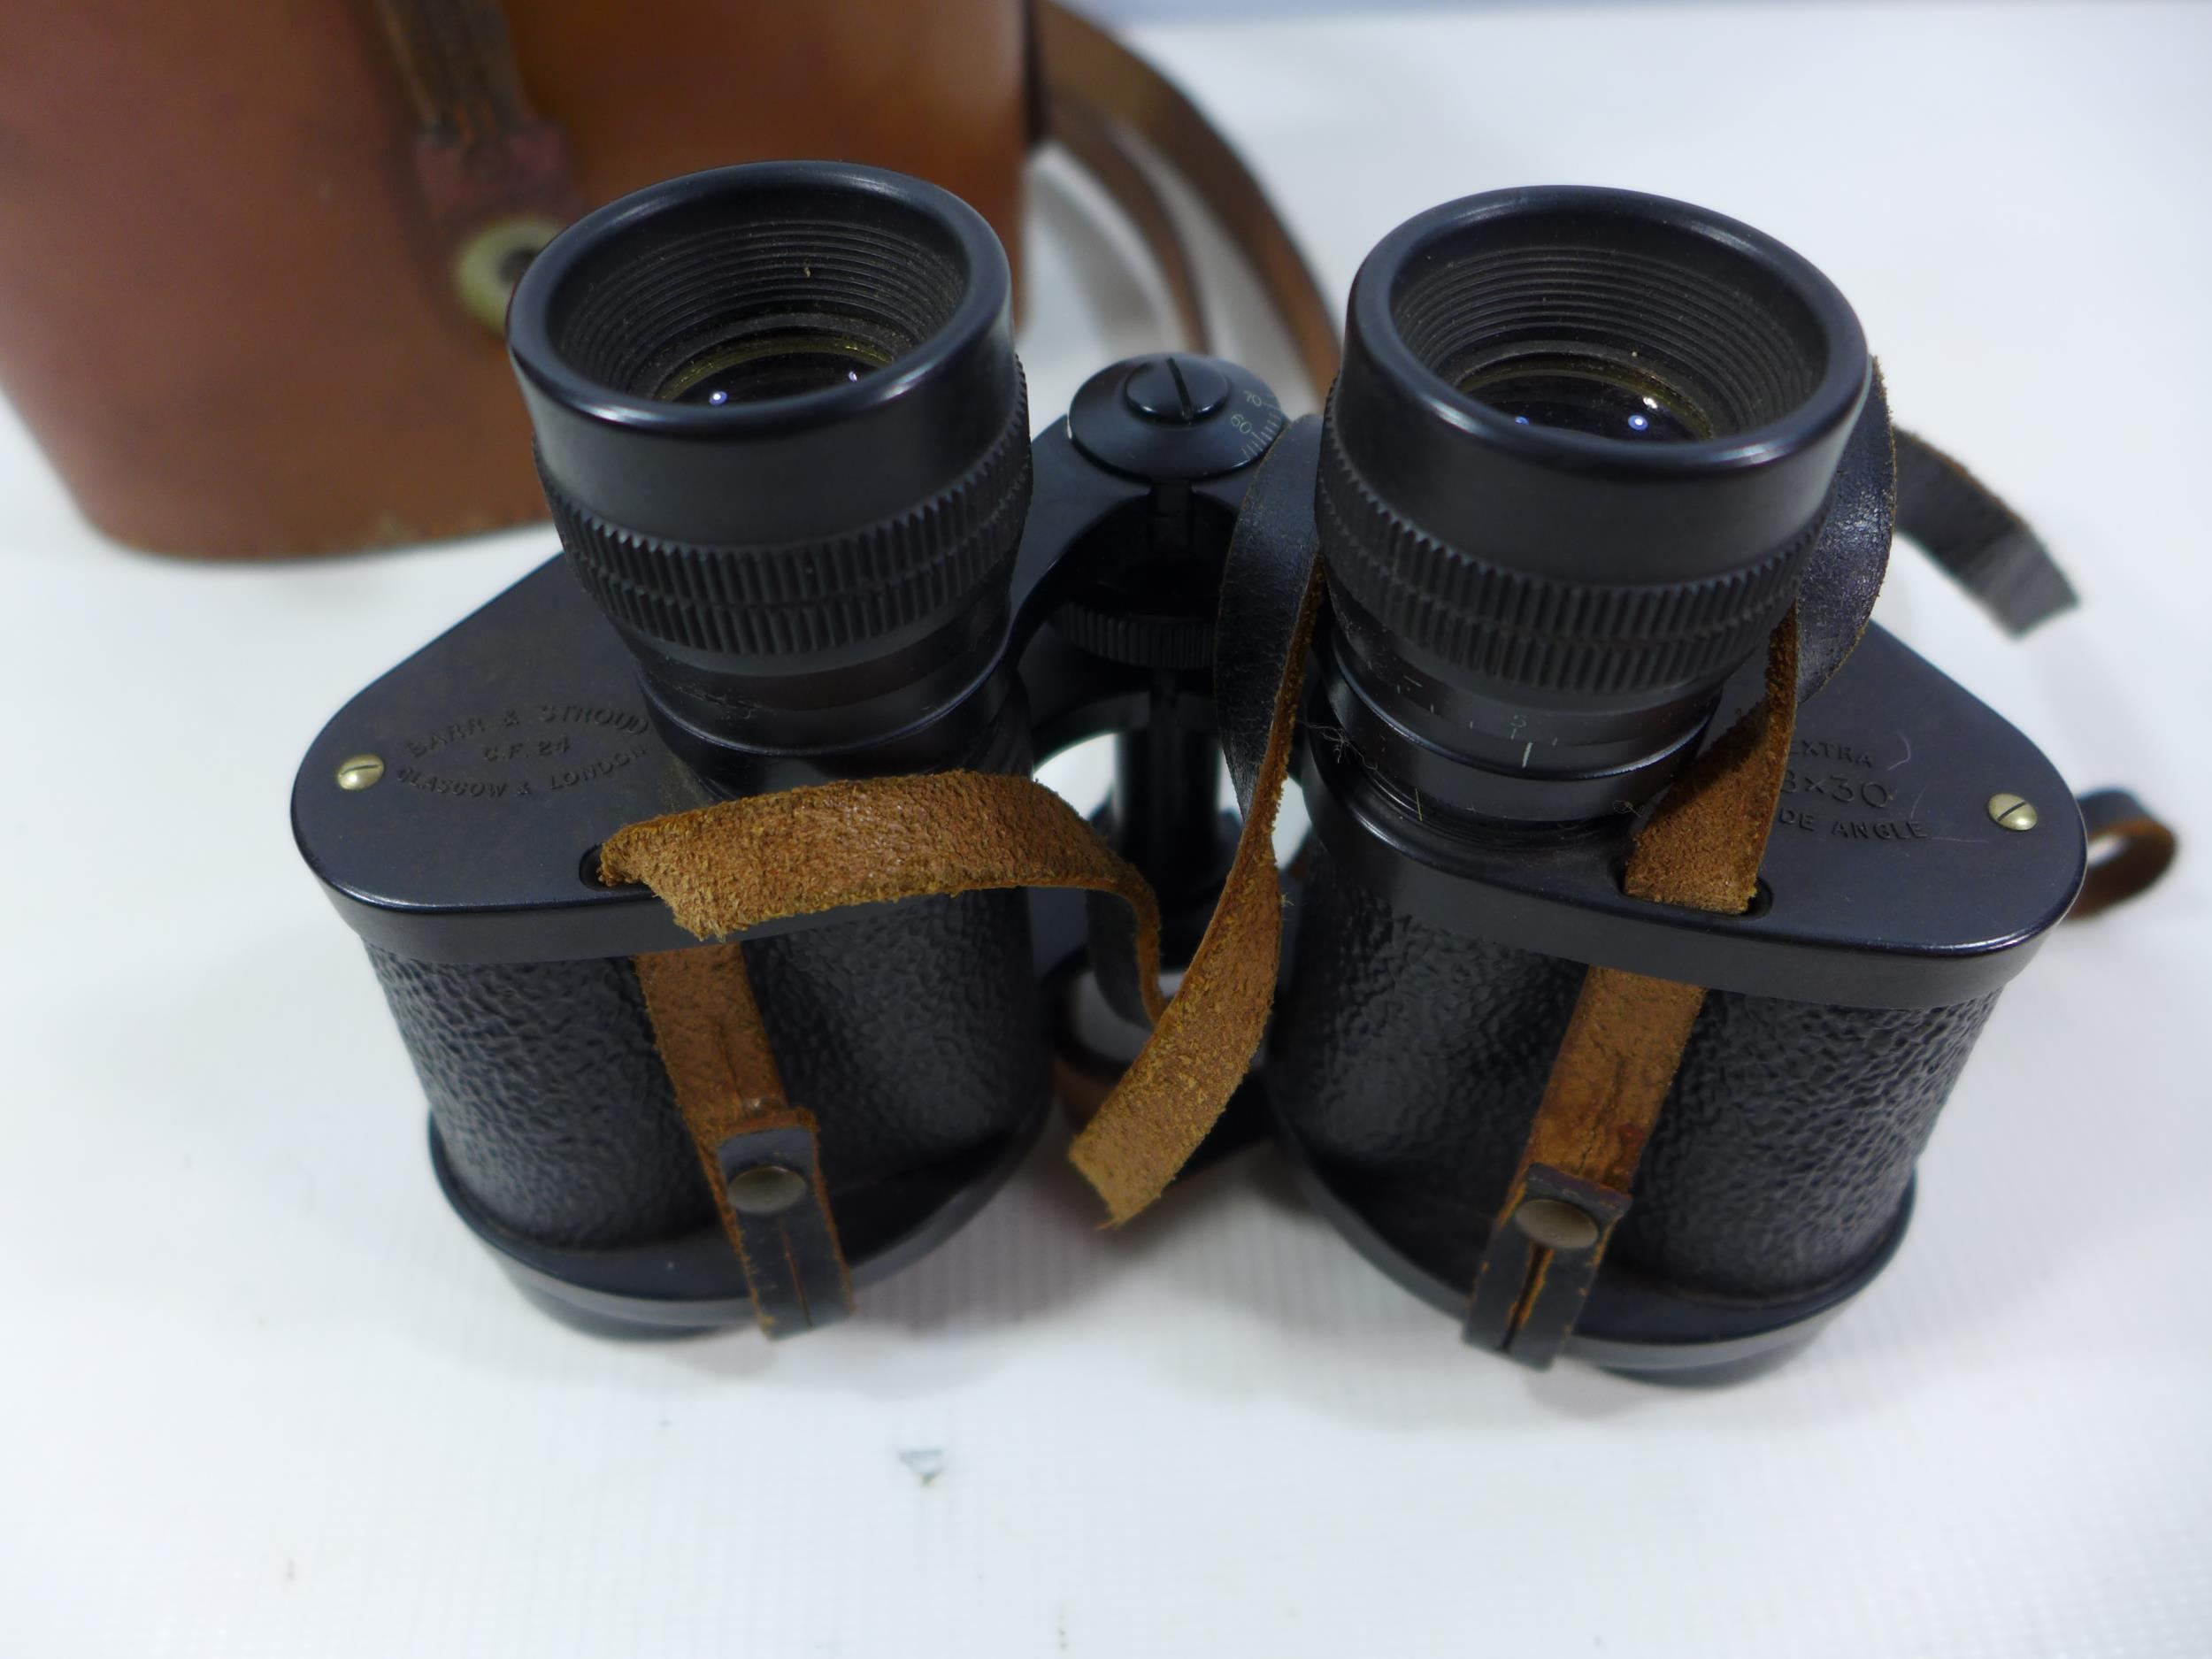 A PAIR OF BARR AND STROUD C.F.24 8X30 BINOCULARS AND LEATHER CASE - Image 2 of 4